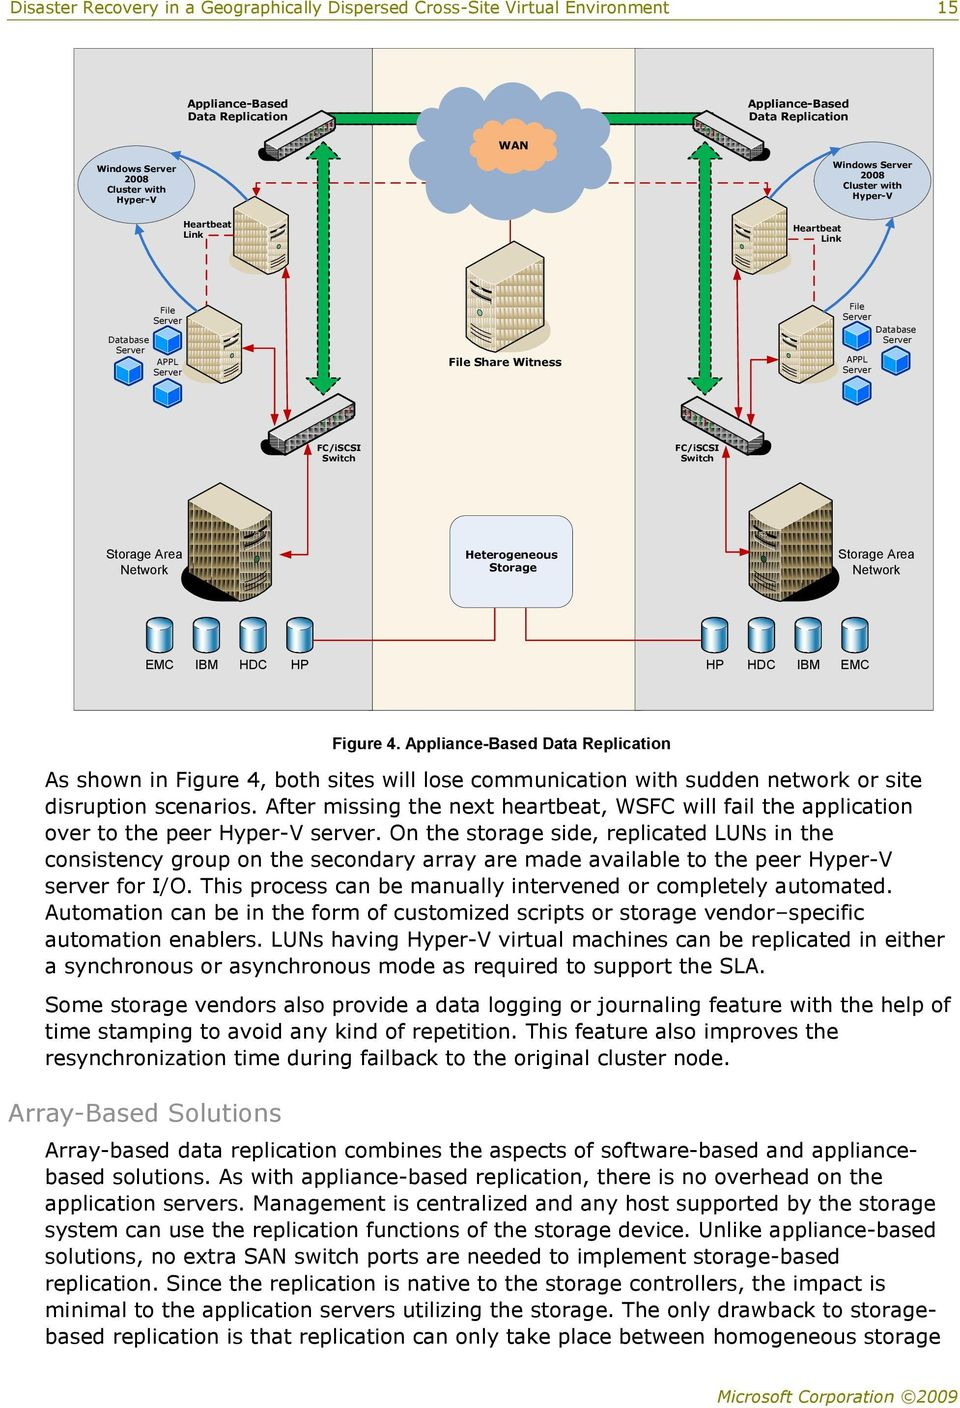 Heterogeneous Storage Storage Area Network EMC IBM HDC HP HP HDC IBM EMC Figure 4.